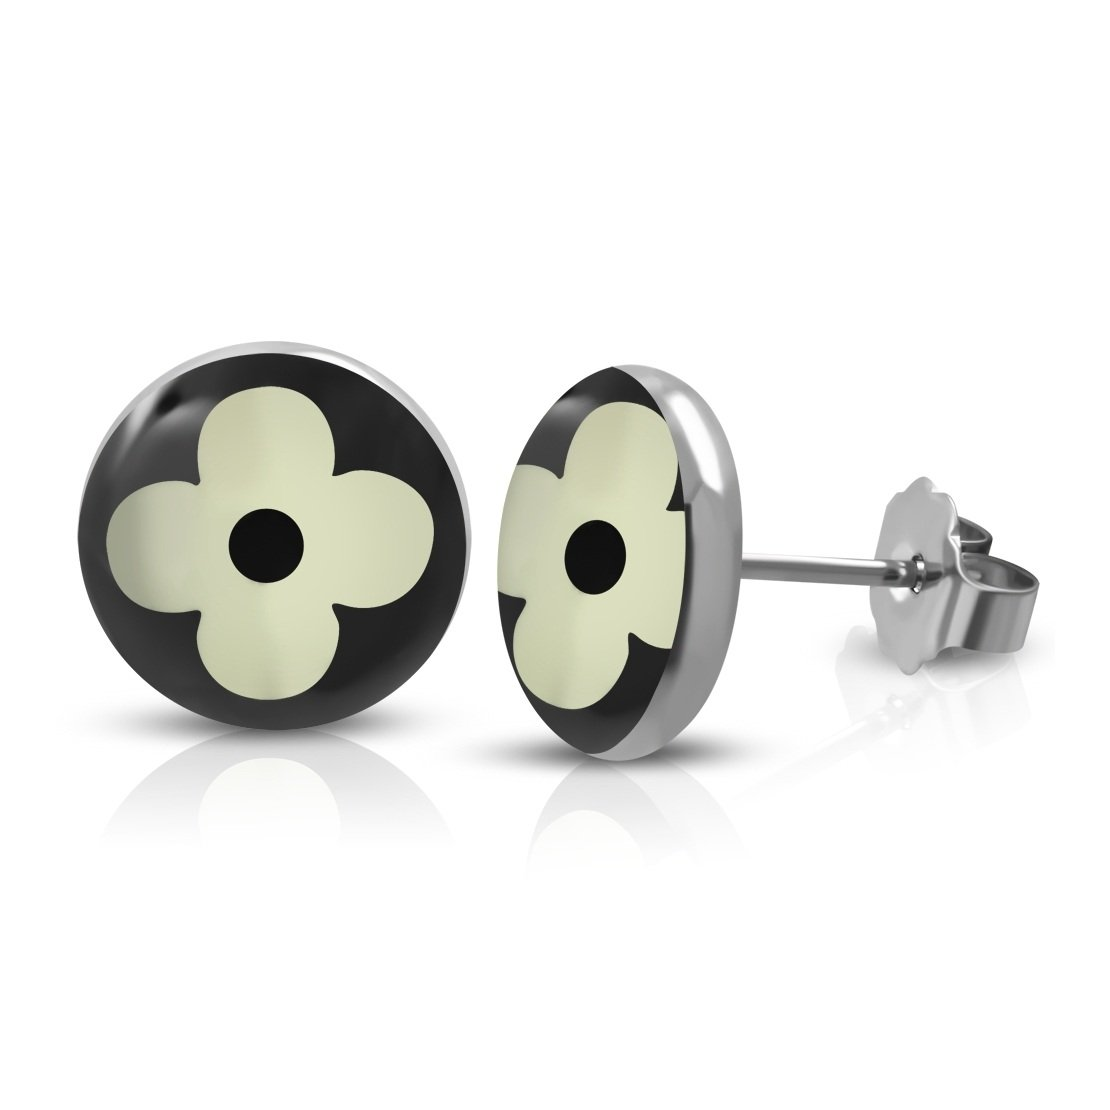 Stainless Steel 3 Color Flower Circle Stud Earrings pair